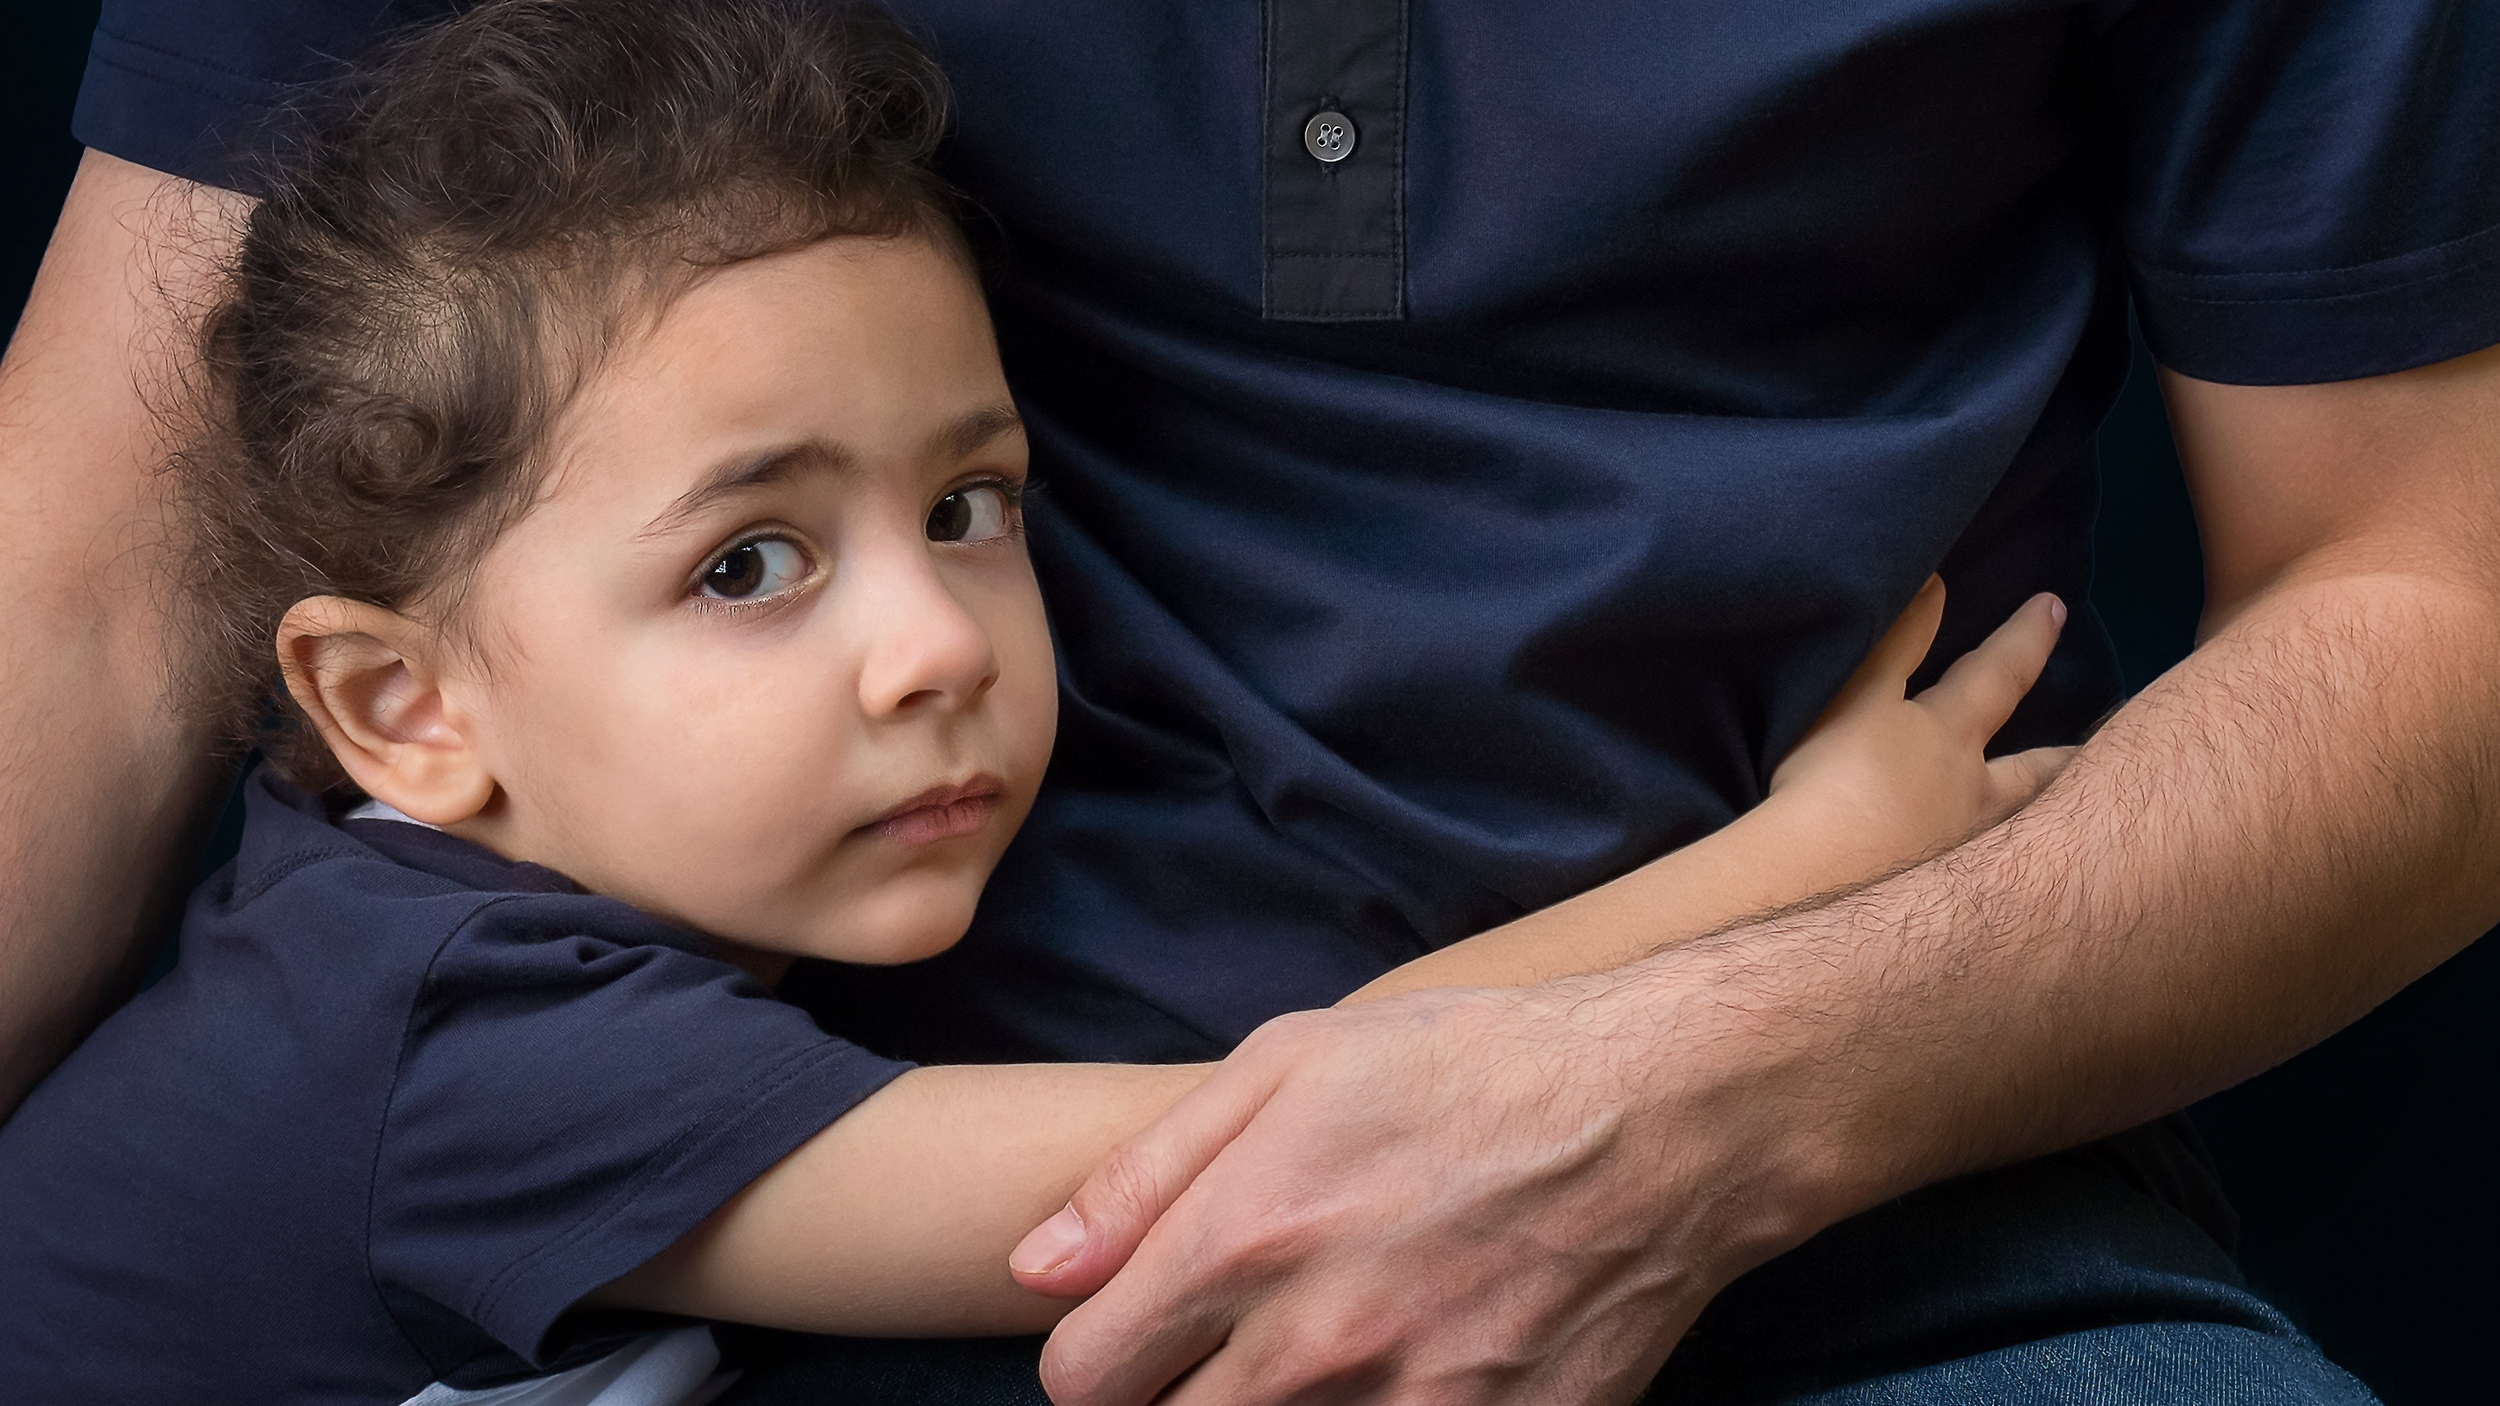 6_ShSt_ChAbuse_stock-photo-a-little-boy-hugs-his-father-s-hand-holiday-father-s-day-213264196.jpg